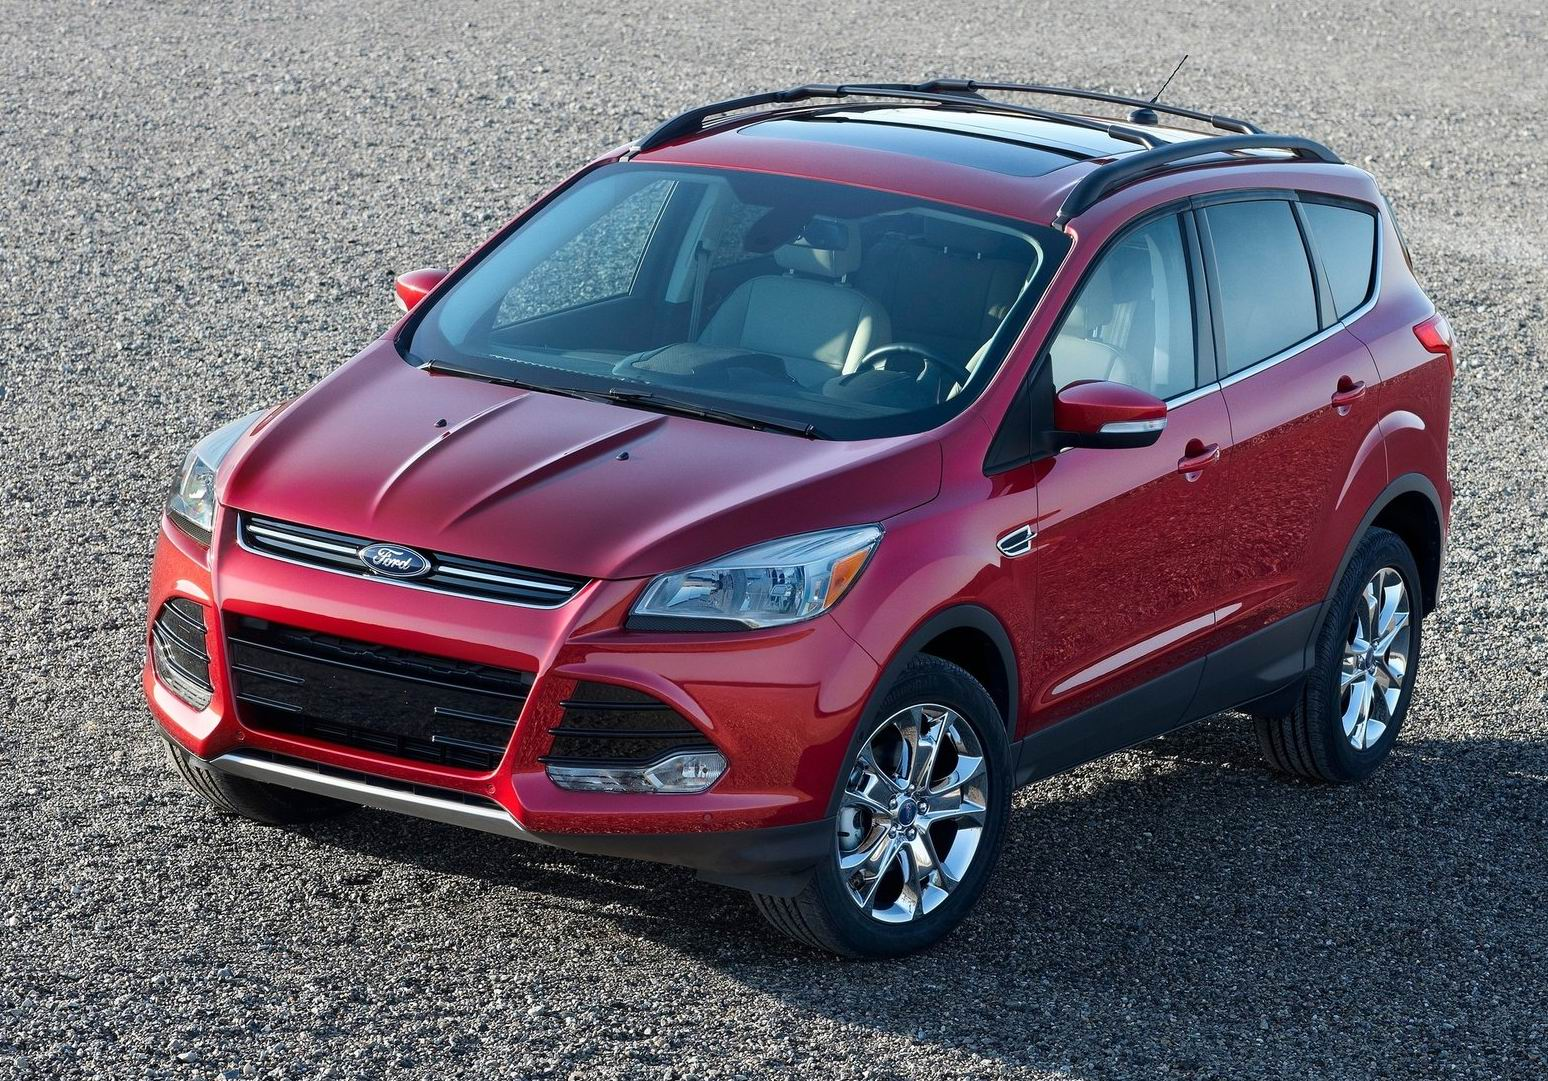 Photo of Ford Escape 2012 [new Kuga]